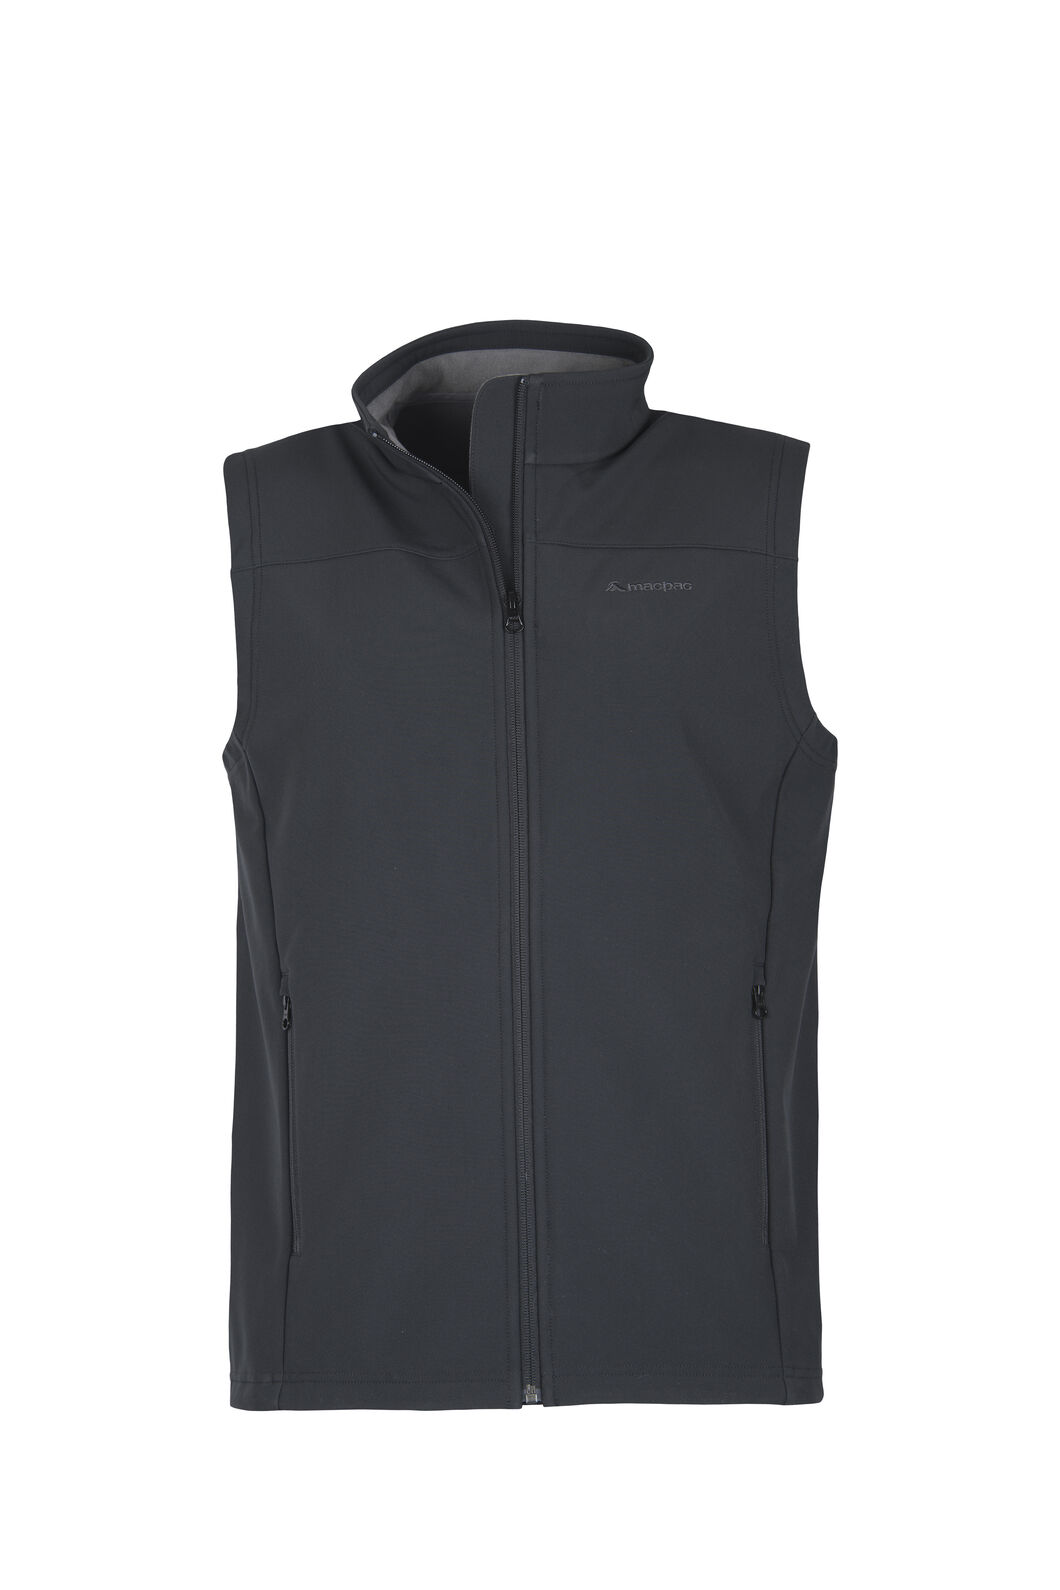 Macpac Sabre Softshell Vest — Men's, Black, hi-res